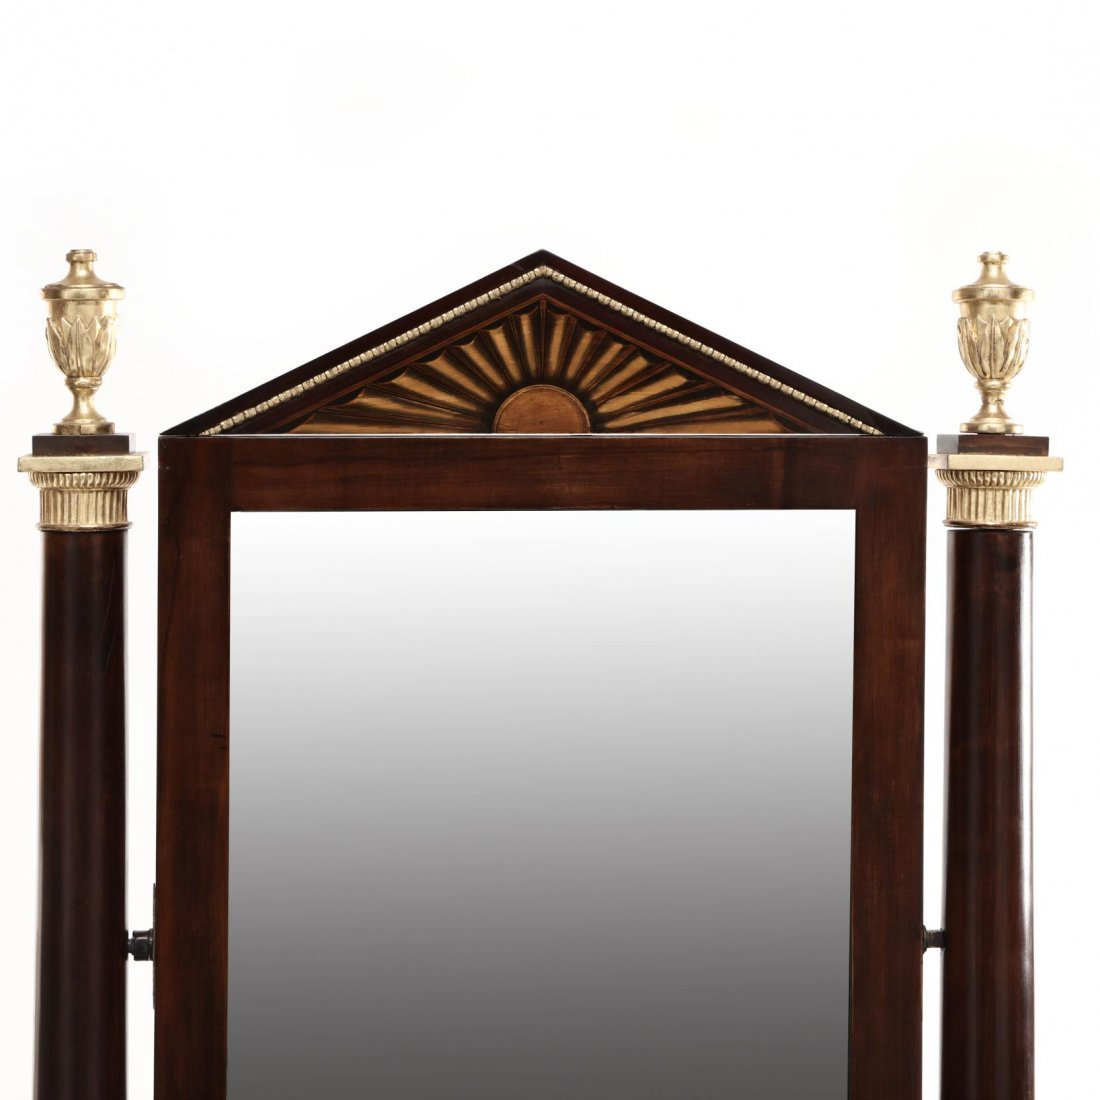 French Classical Revival Dressing Table - 2